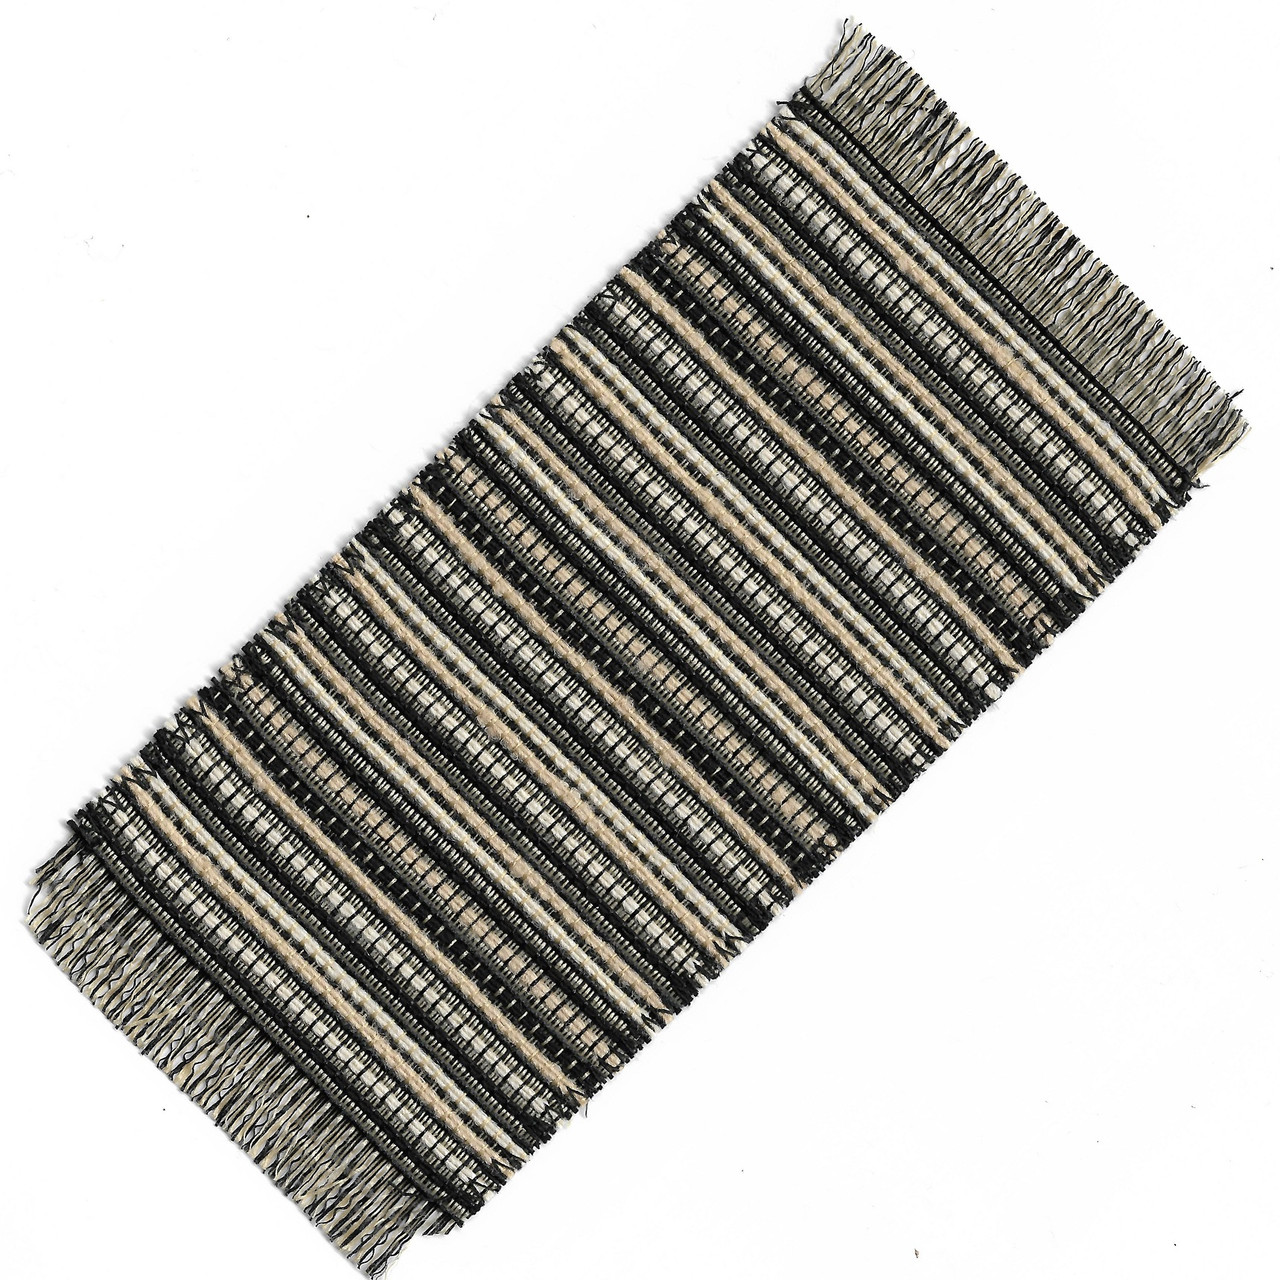 Small Black and Tan Woven Rug (SMSHWRS416Y)